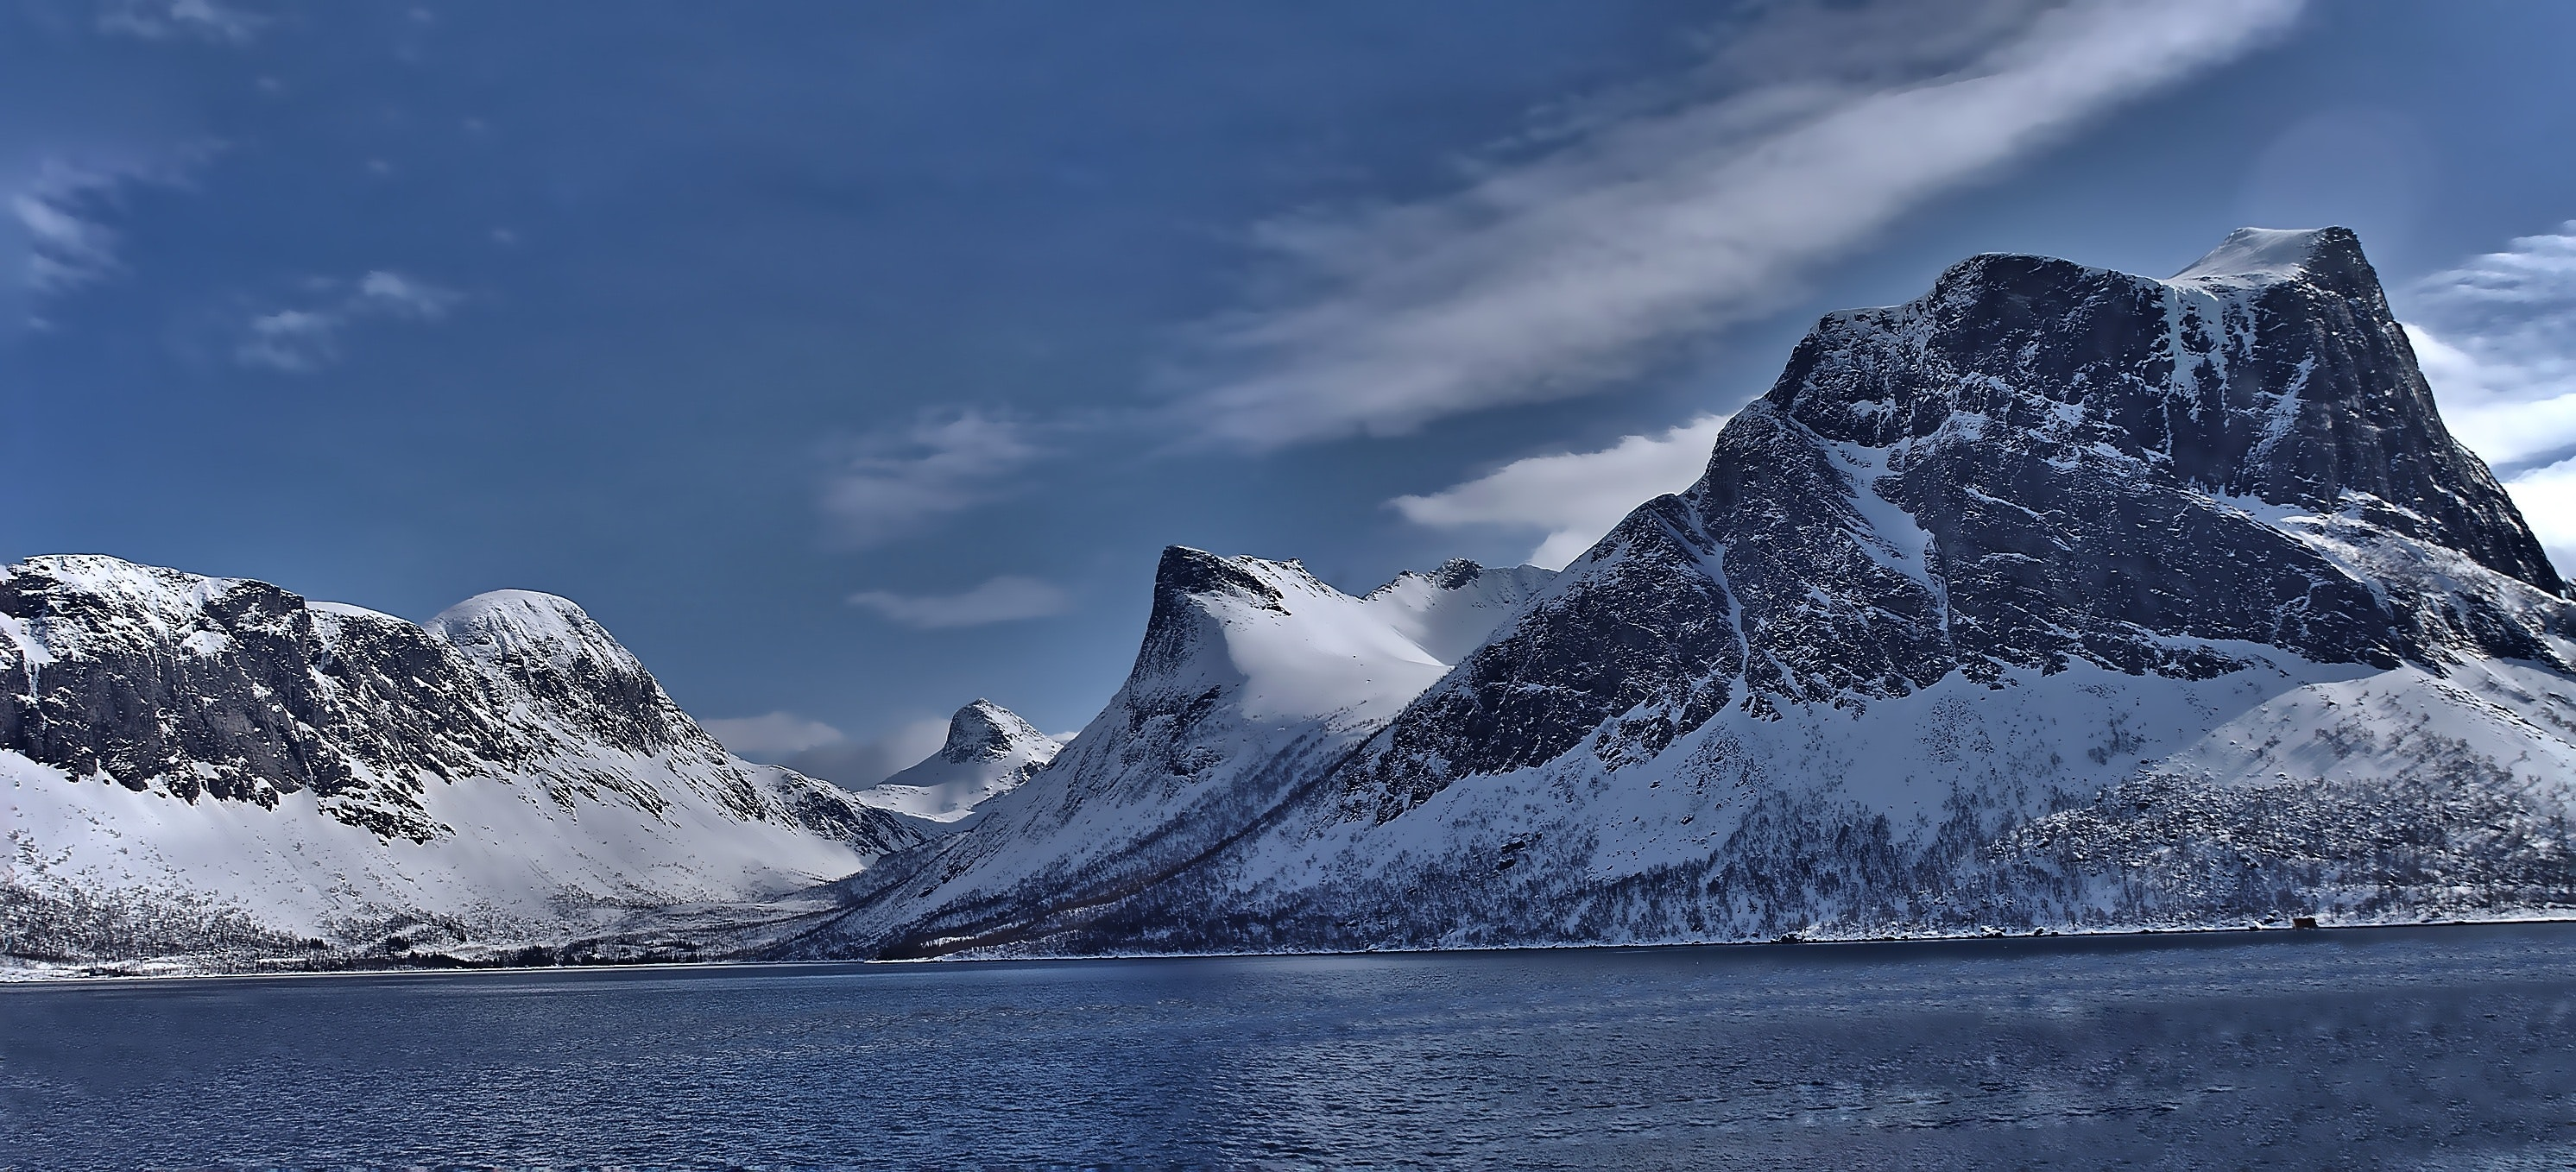 Scenic View of Lake Against Mountain Range, Light, Winter, Water, Travel, HQ Photo